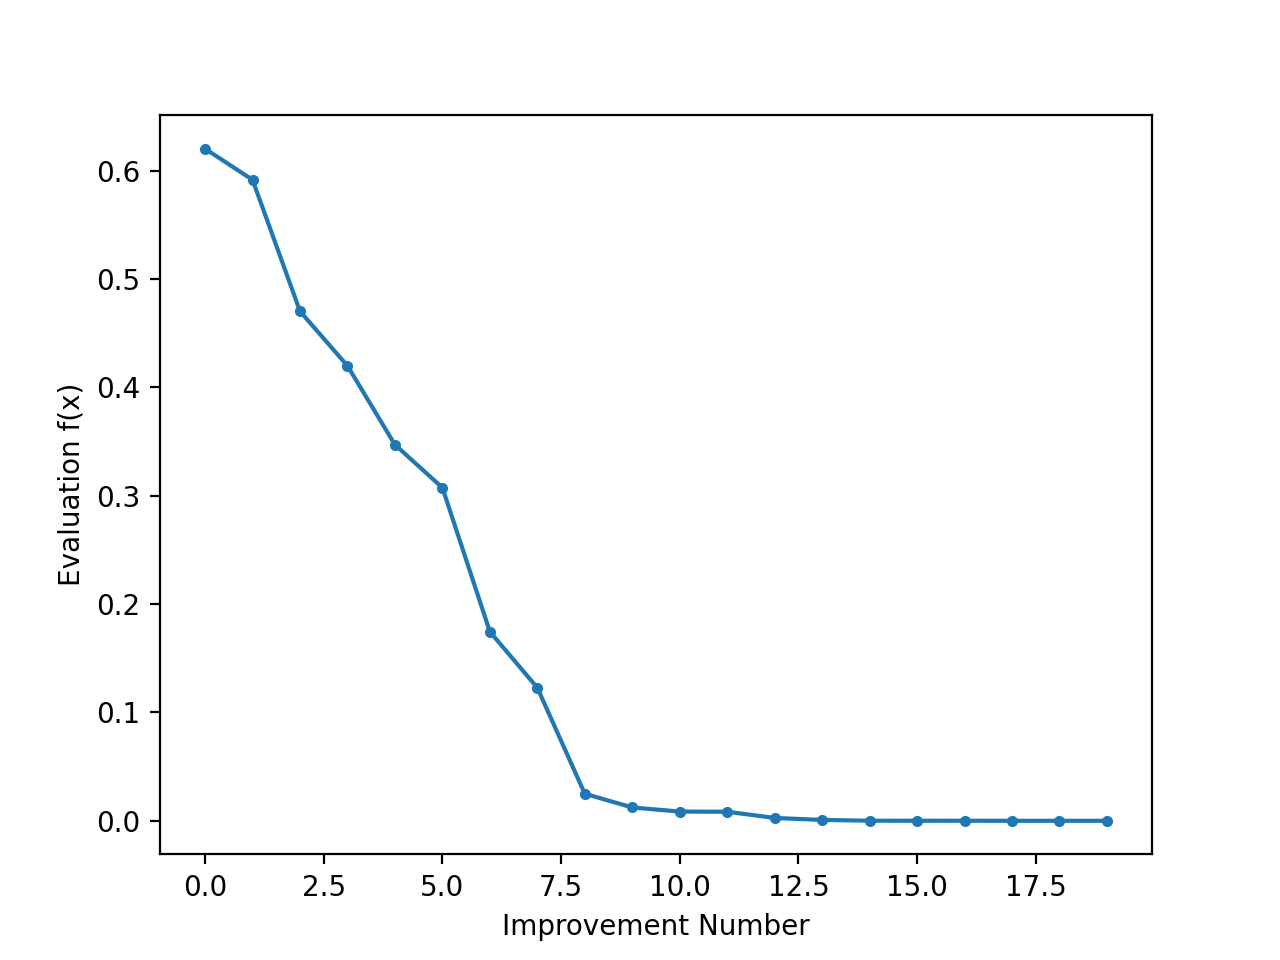 Line Plot of Objective Function Evaluation for Each Improvement During the Simulated Annealing Search